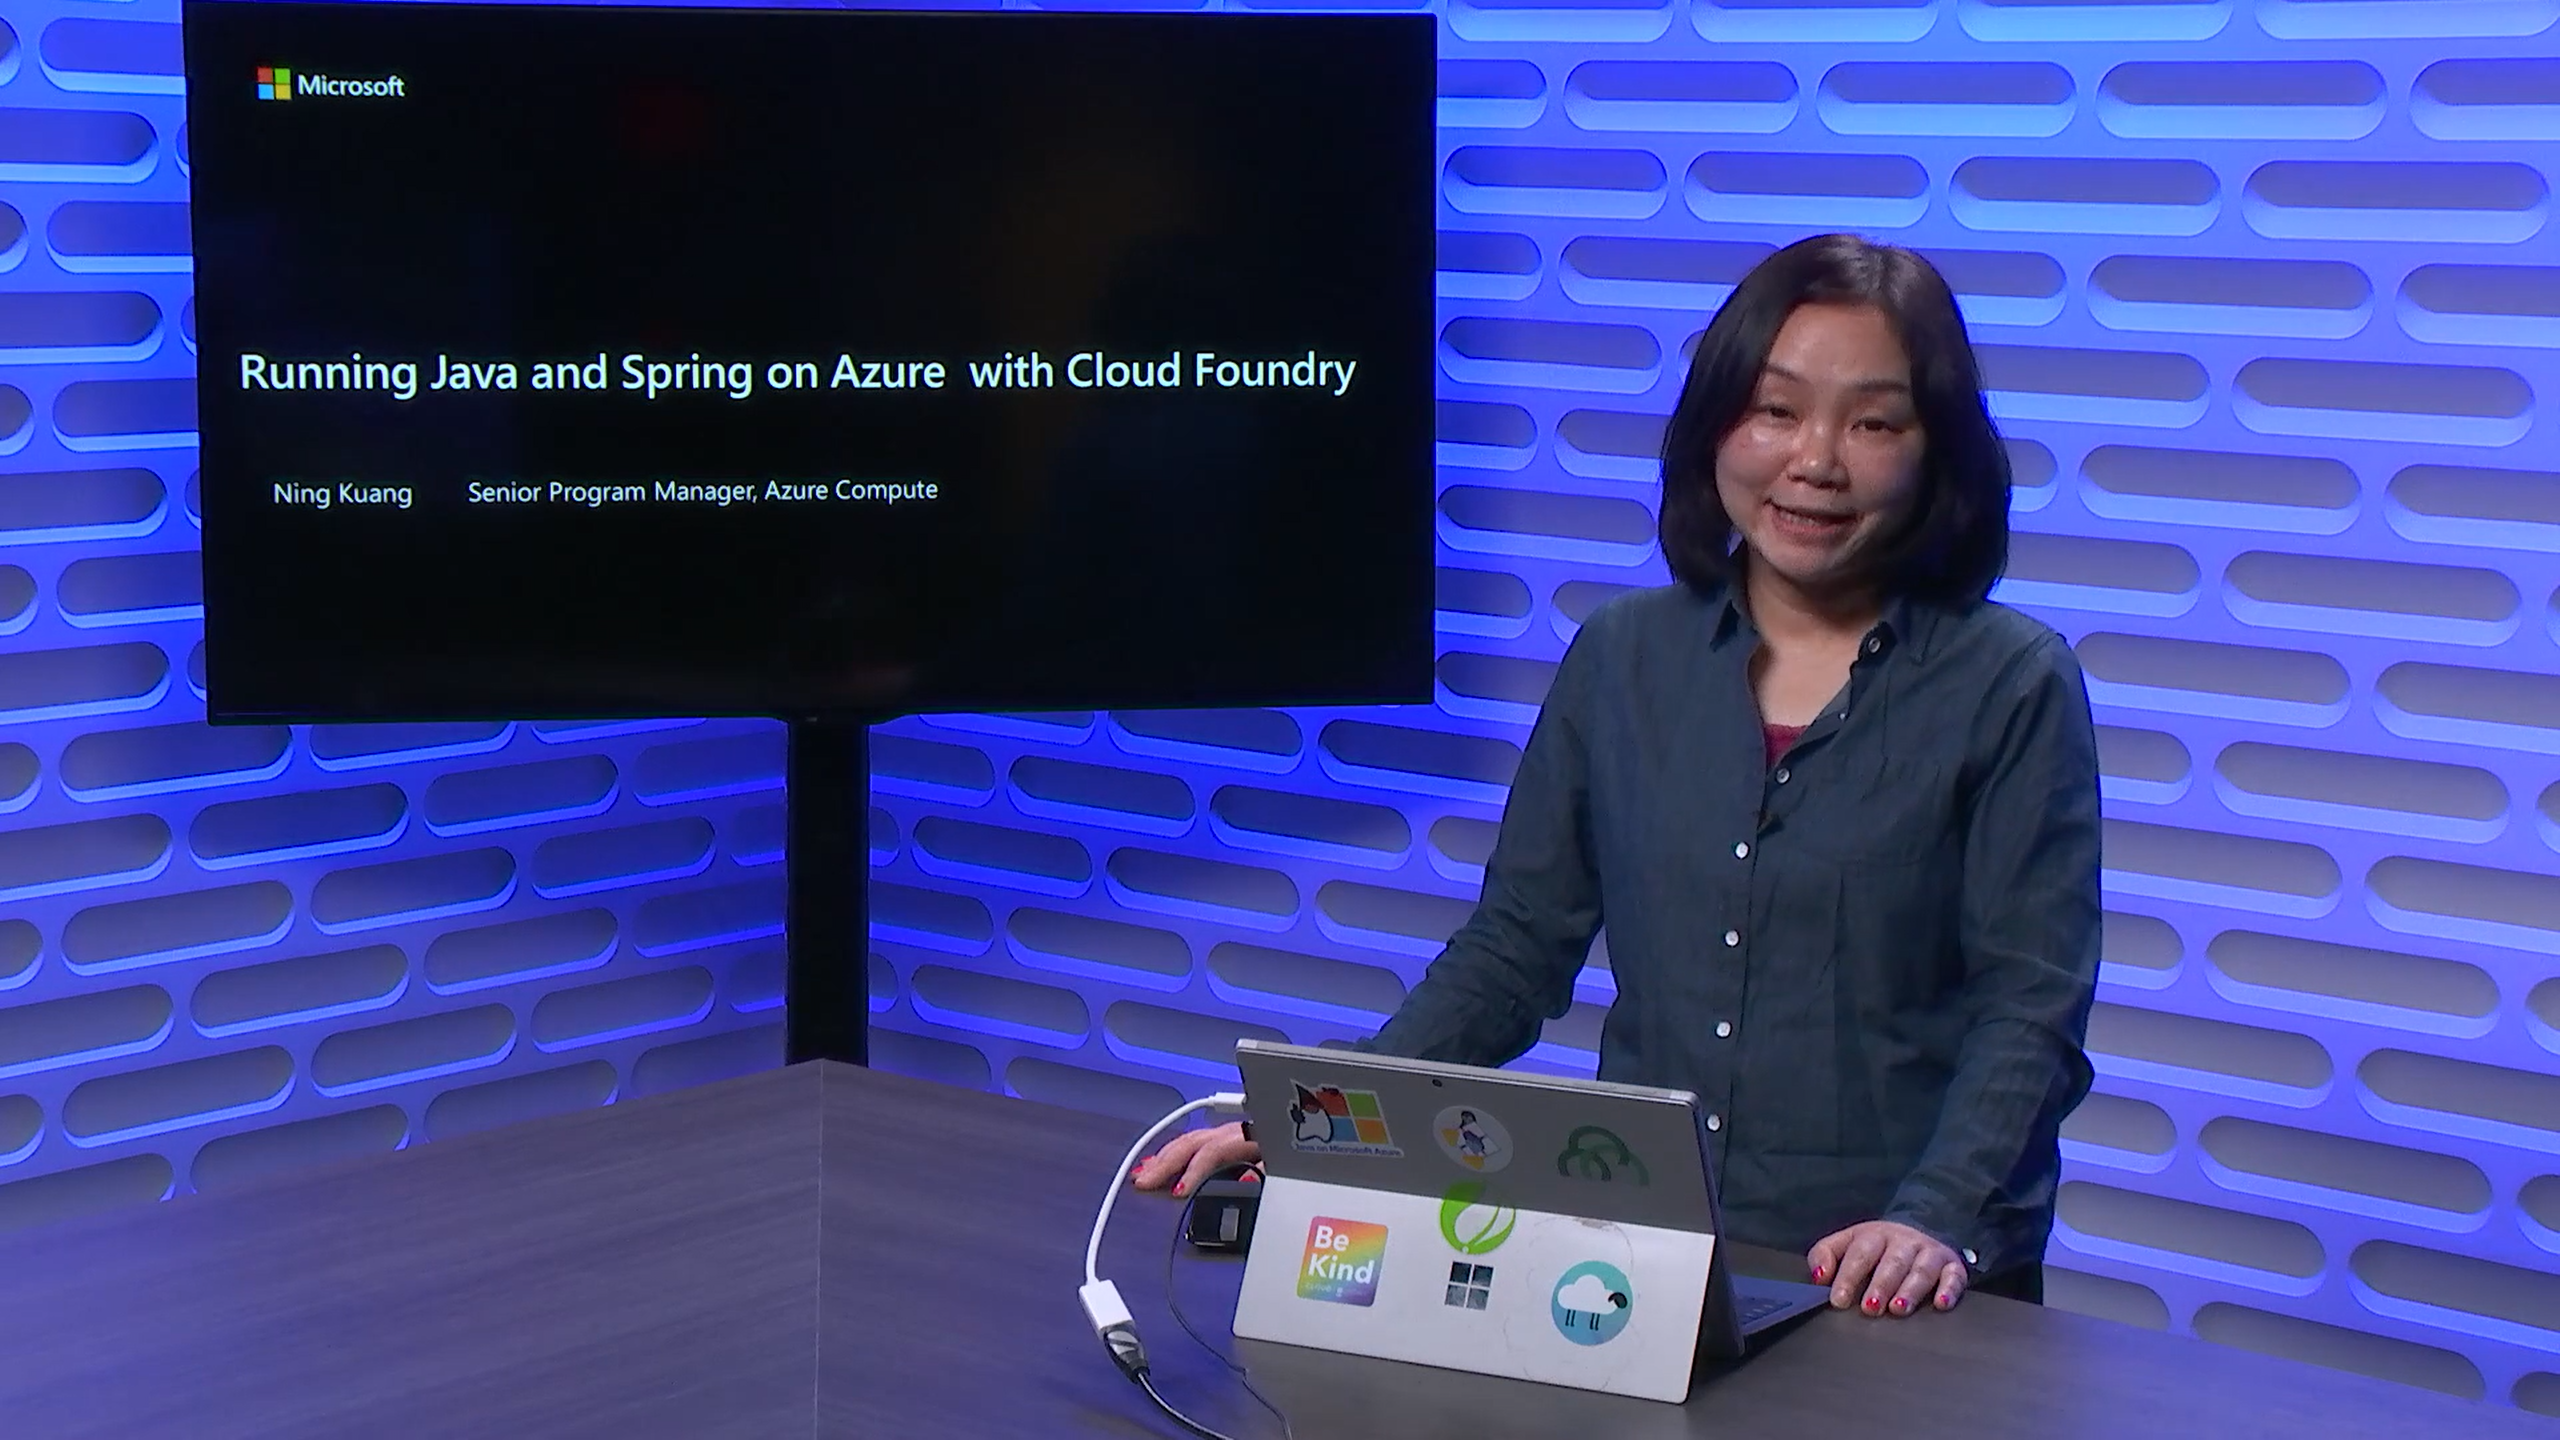 Running Java and Spring on Azure with Cloud Foundry